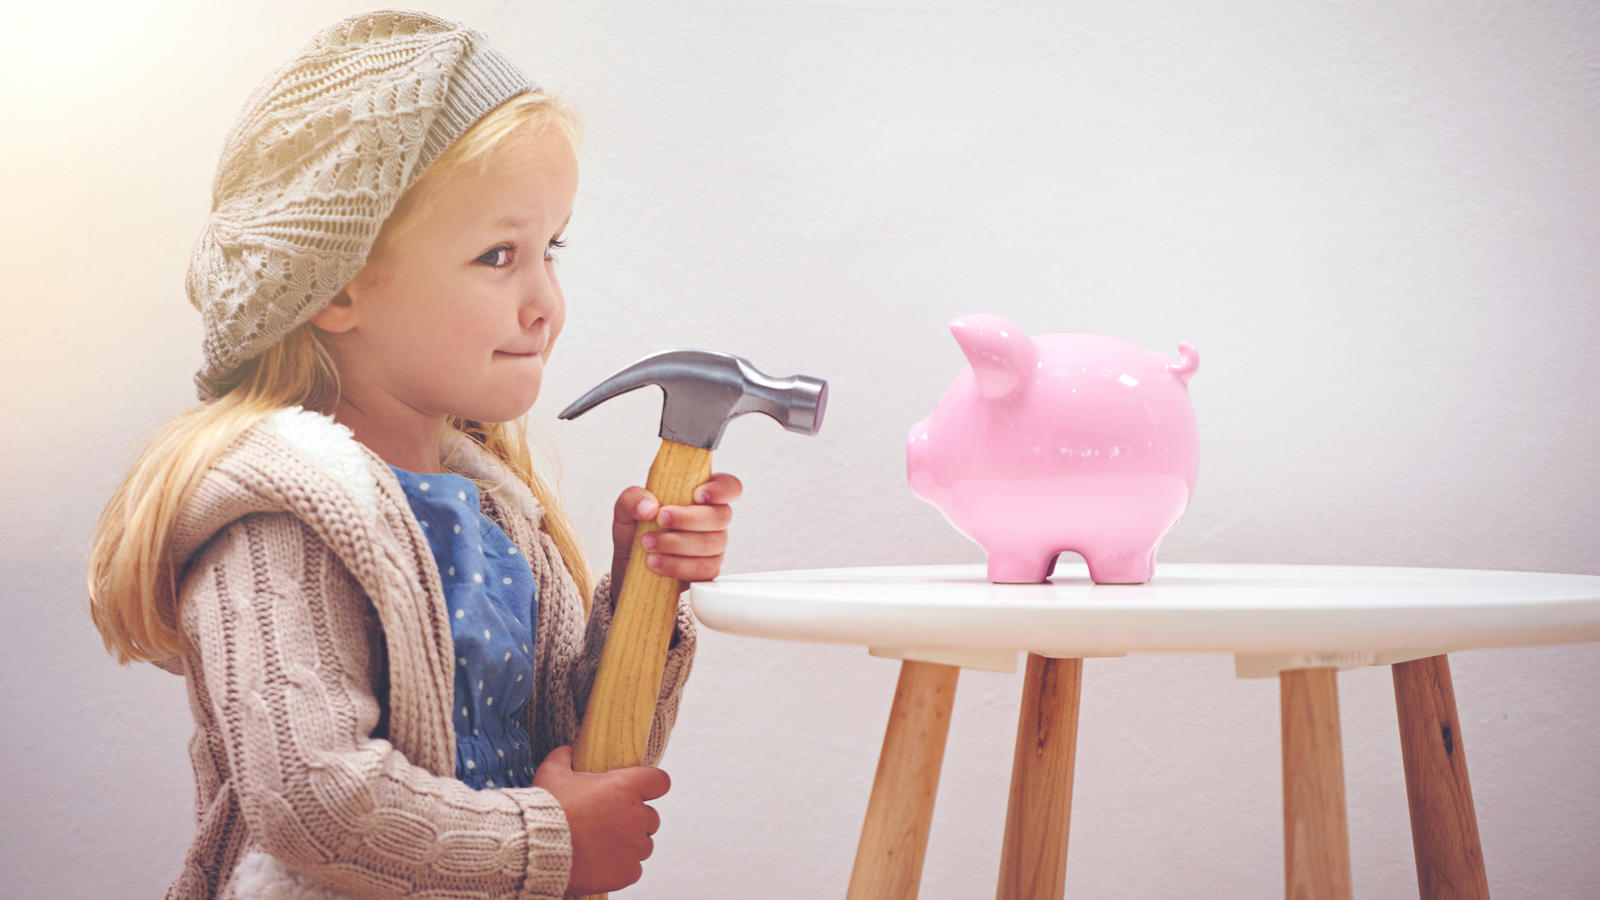 A little girl standing next to her piggy bank with a hammerhttp://195.154.178.81/DATA/i_collage/pi/shoots/783492.jpg